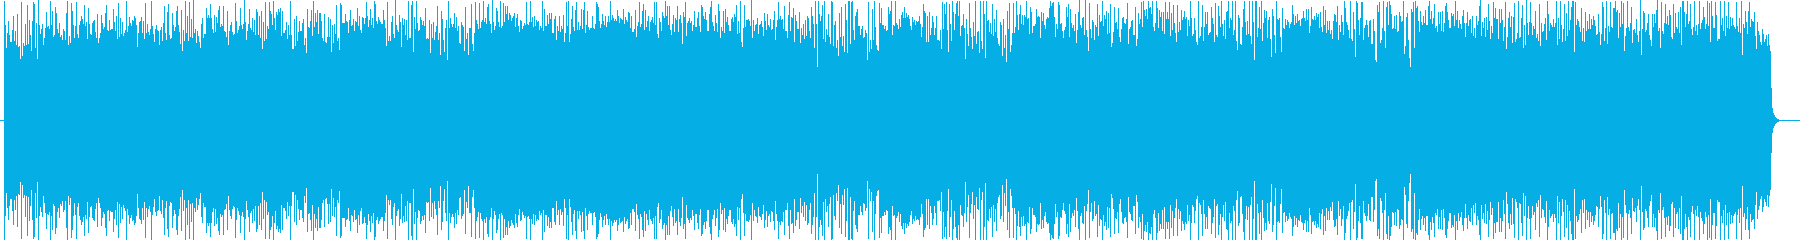 Formal but bright song's reproduced waveform